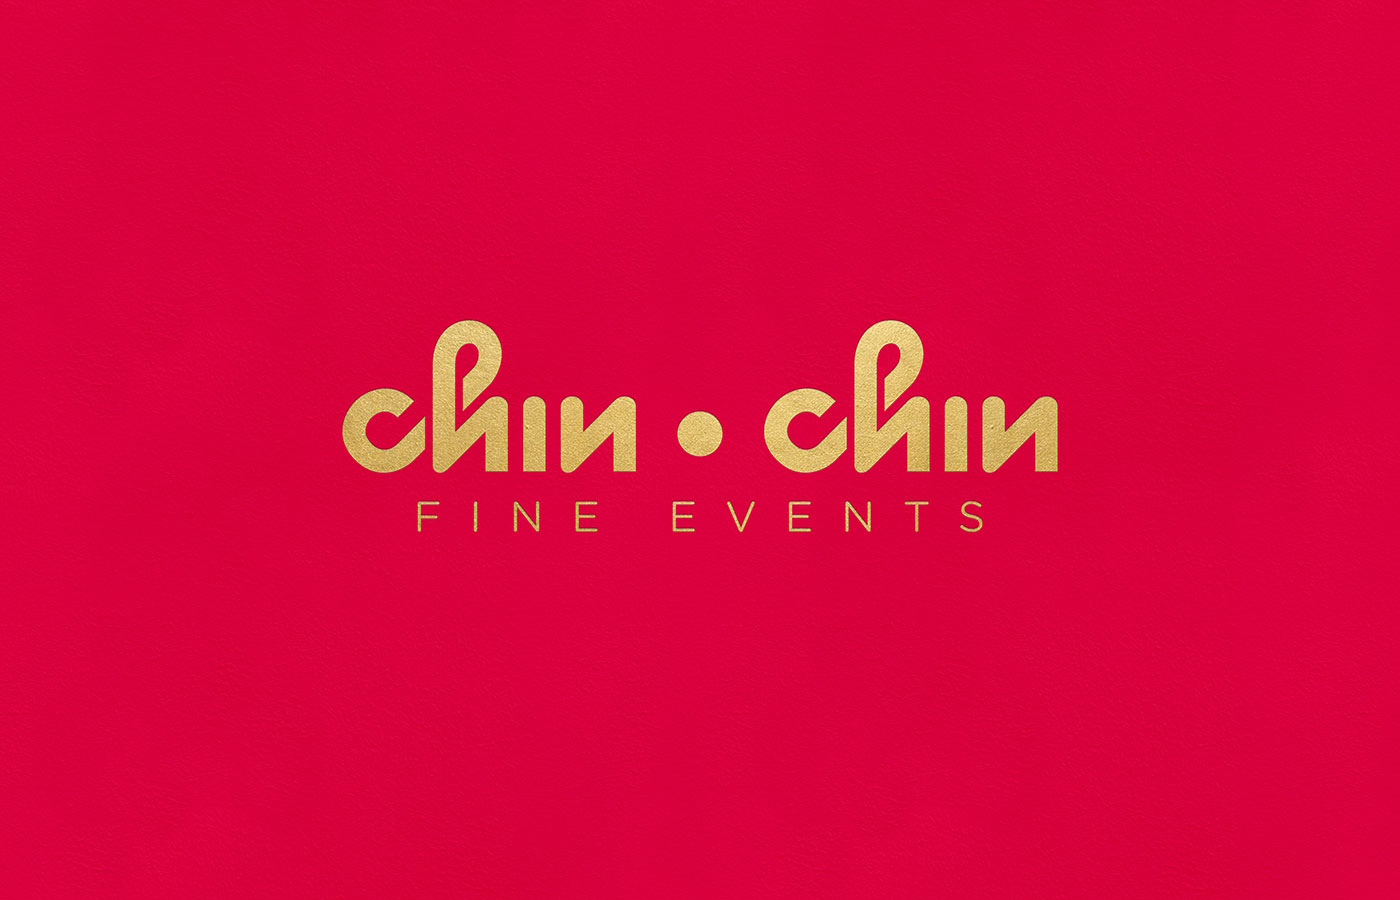 Outfit Branding & Design Chin Chin Fine Events Logo Wordmark